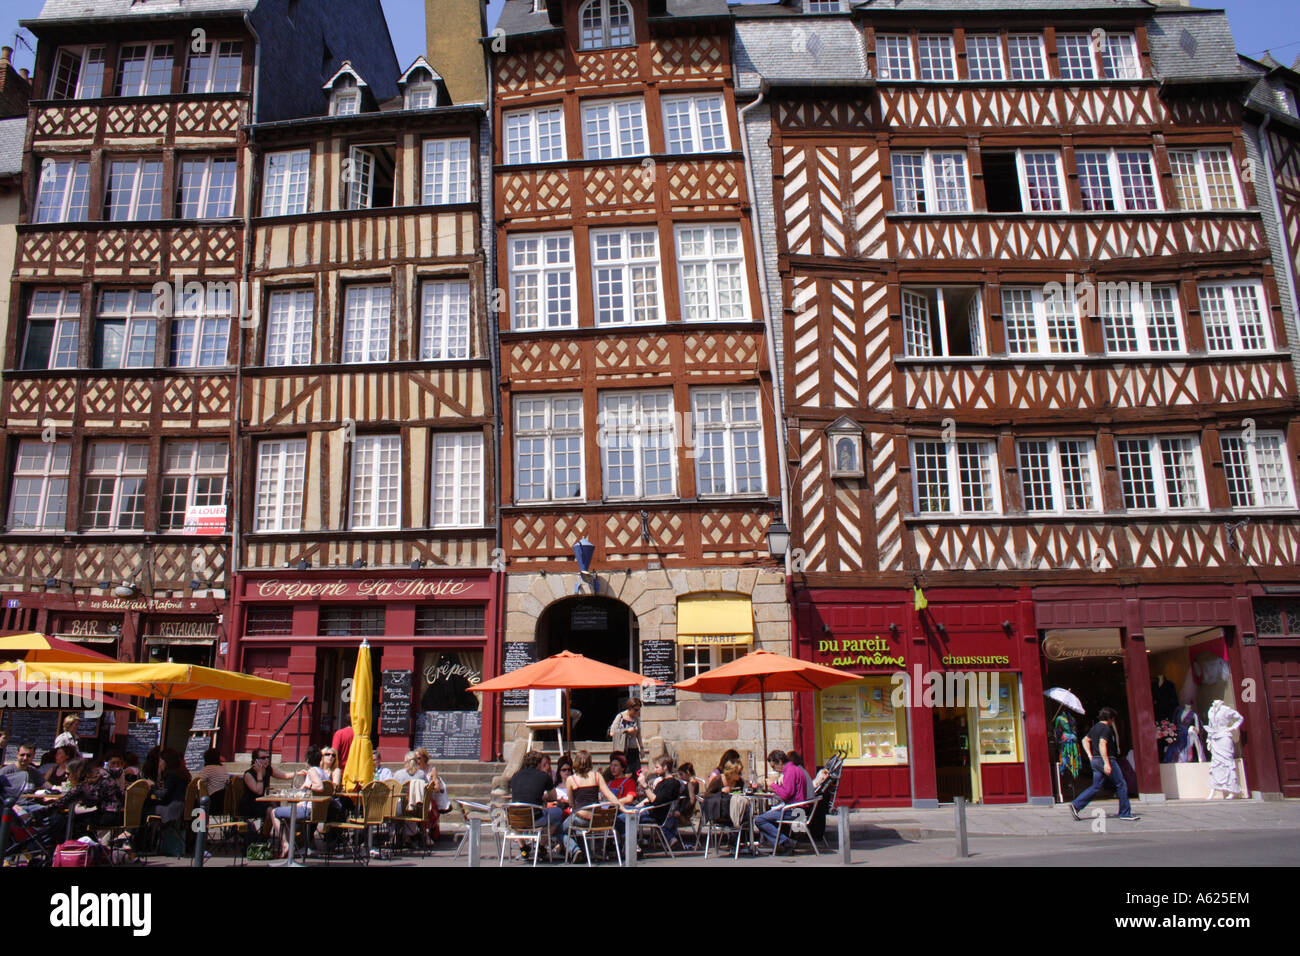 Half-timbered houses, Rennes, Brittany, France Stock Photo